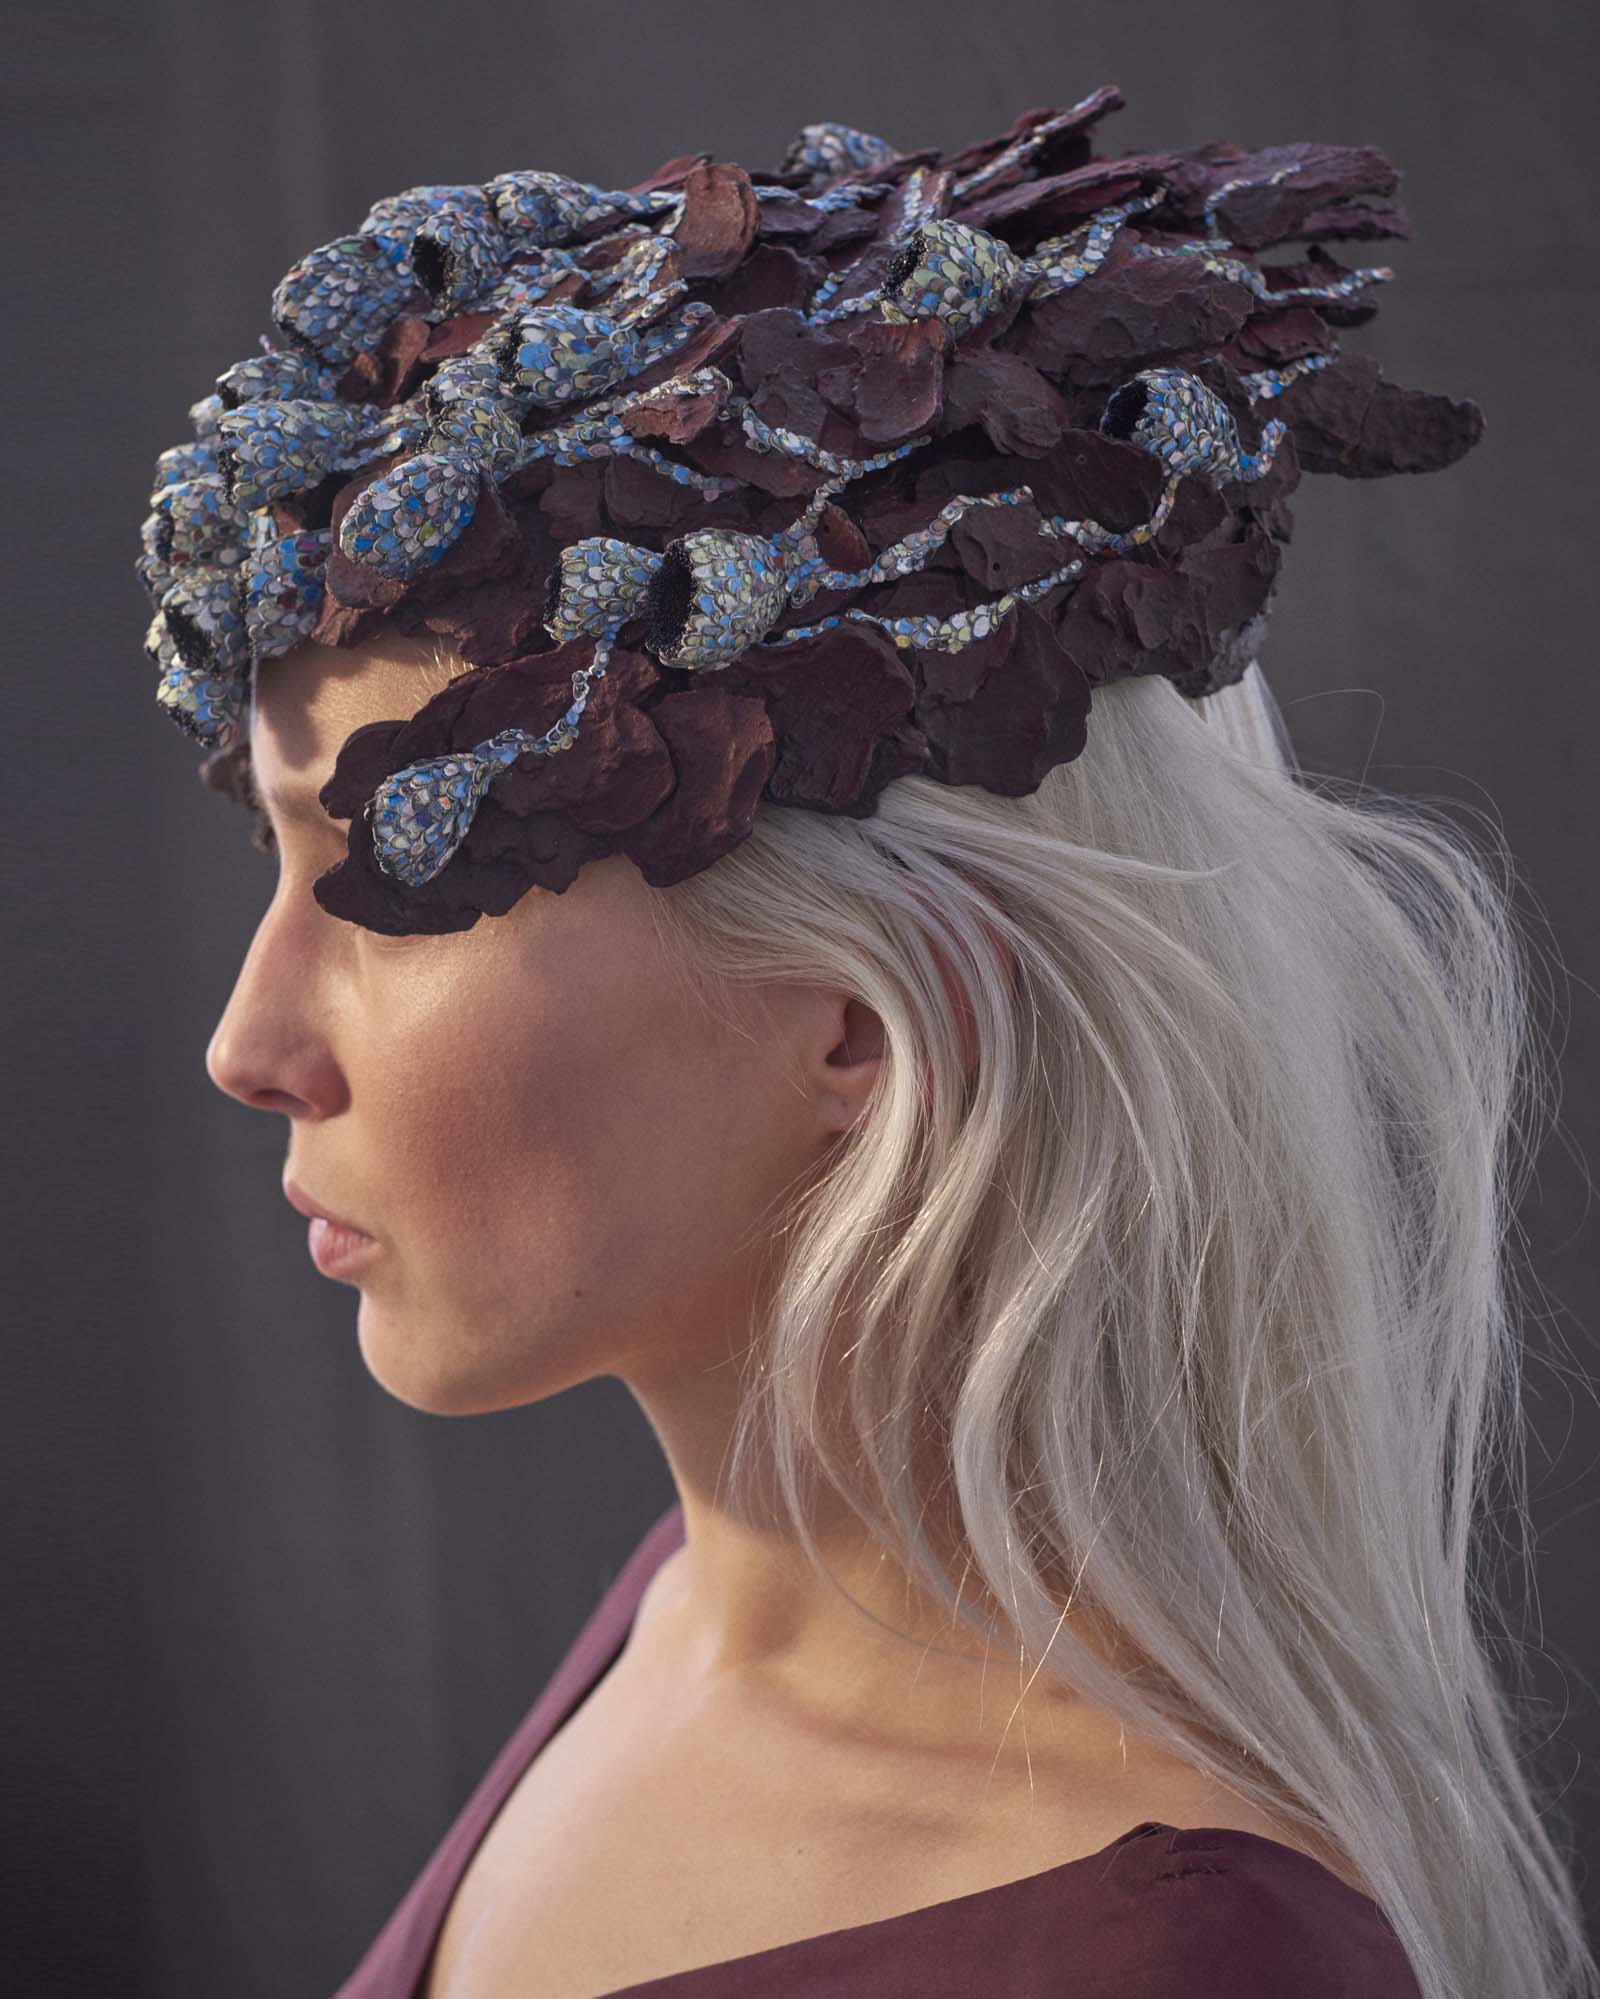 """In The Beginning There Was Red"" I Headpiece, 2017 I Wood bark, graffiti, almond shells, glass, paint I Photo: Laurens Grigoleit"